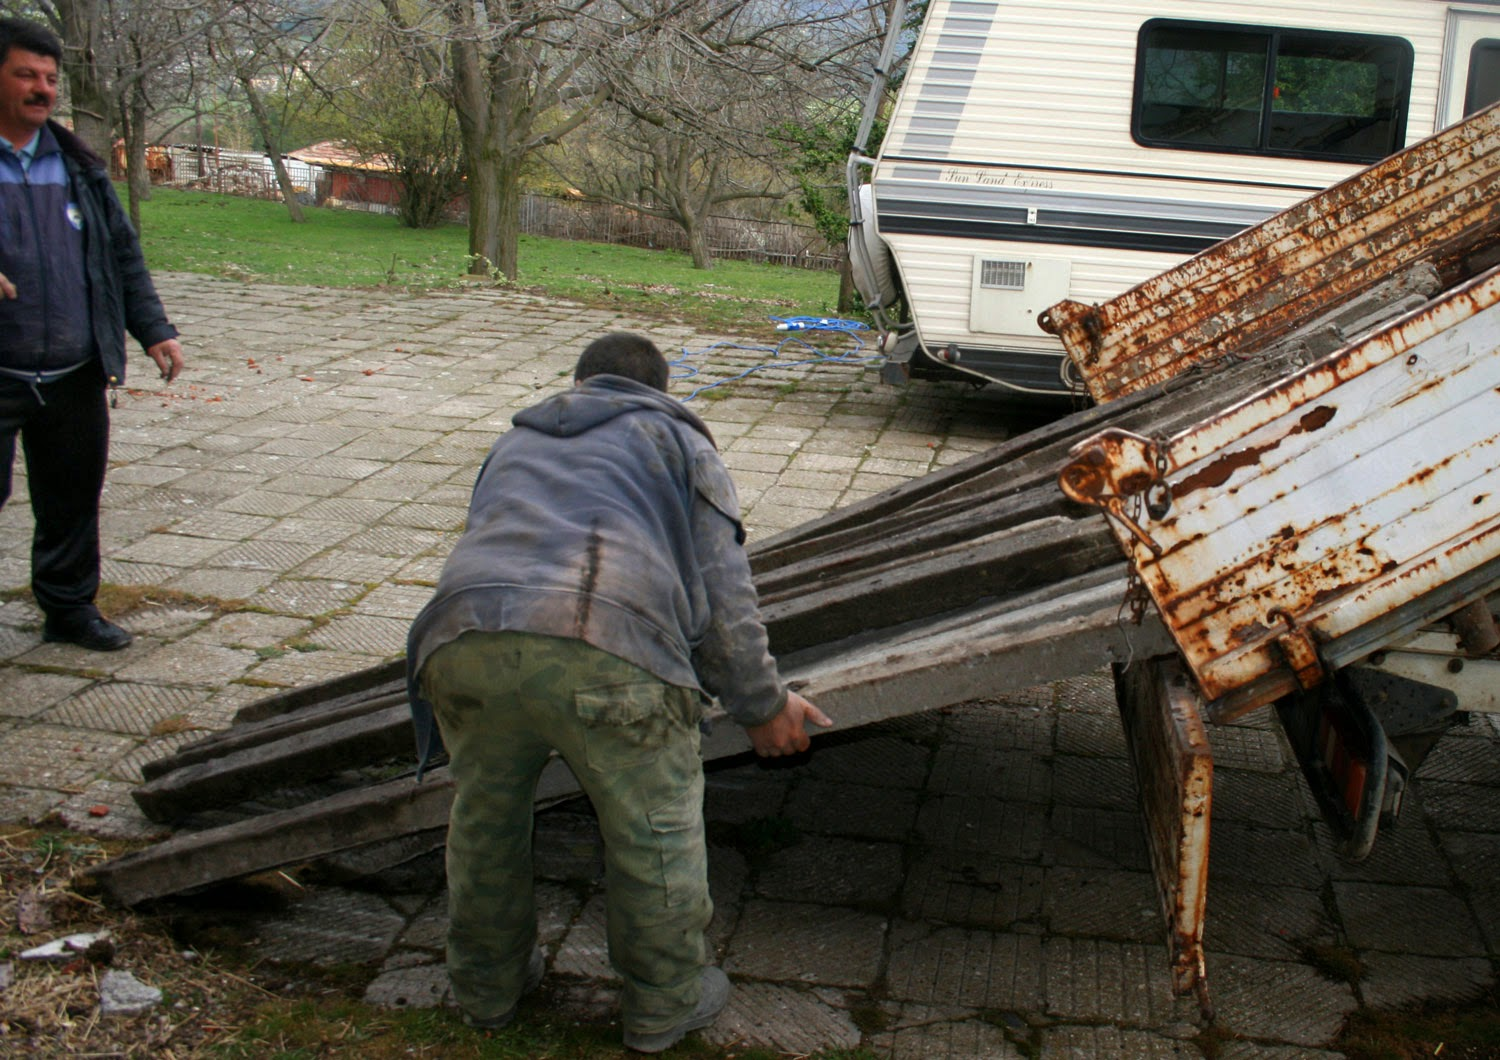 Unloading the fence posts